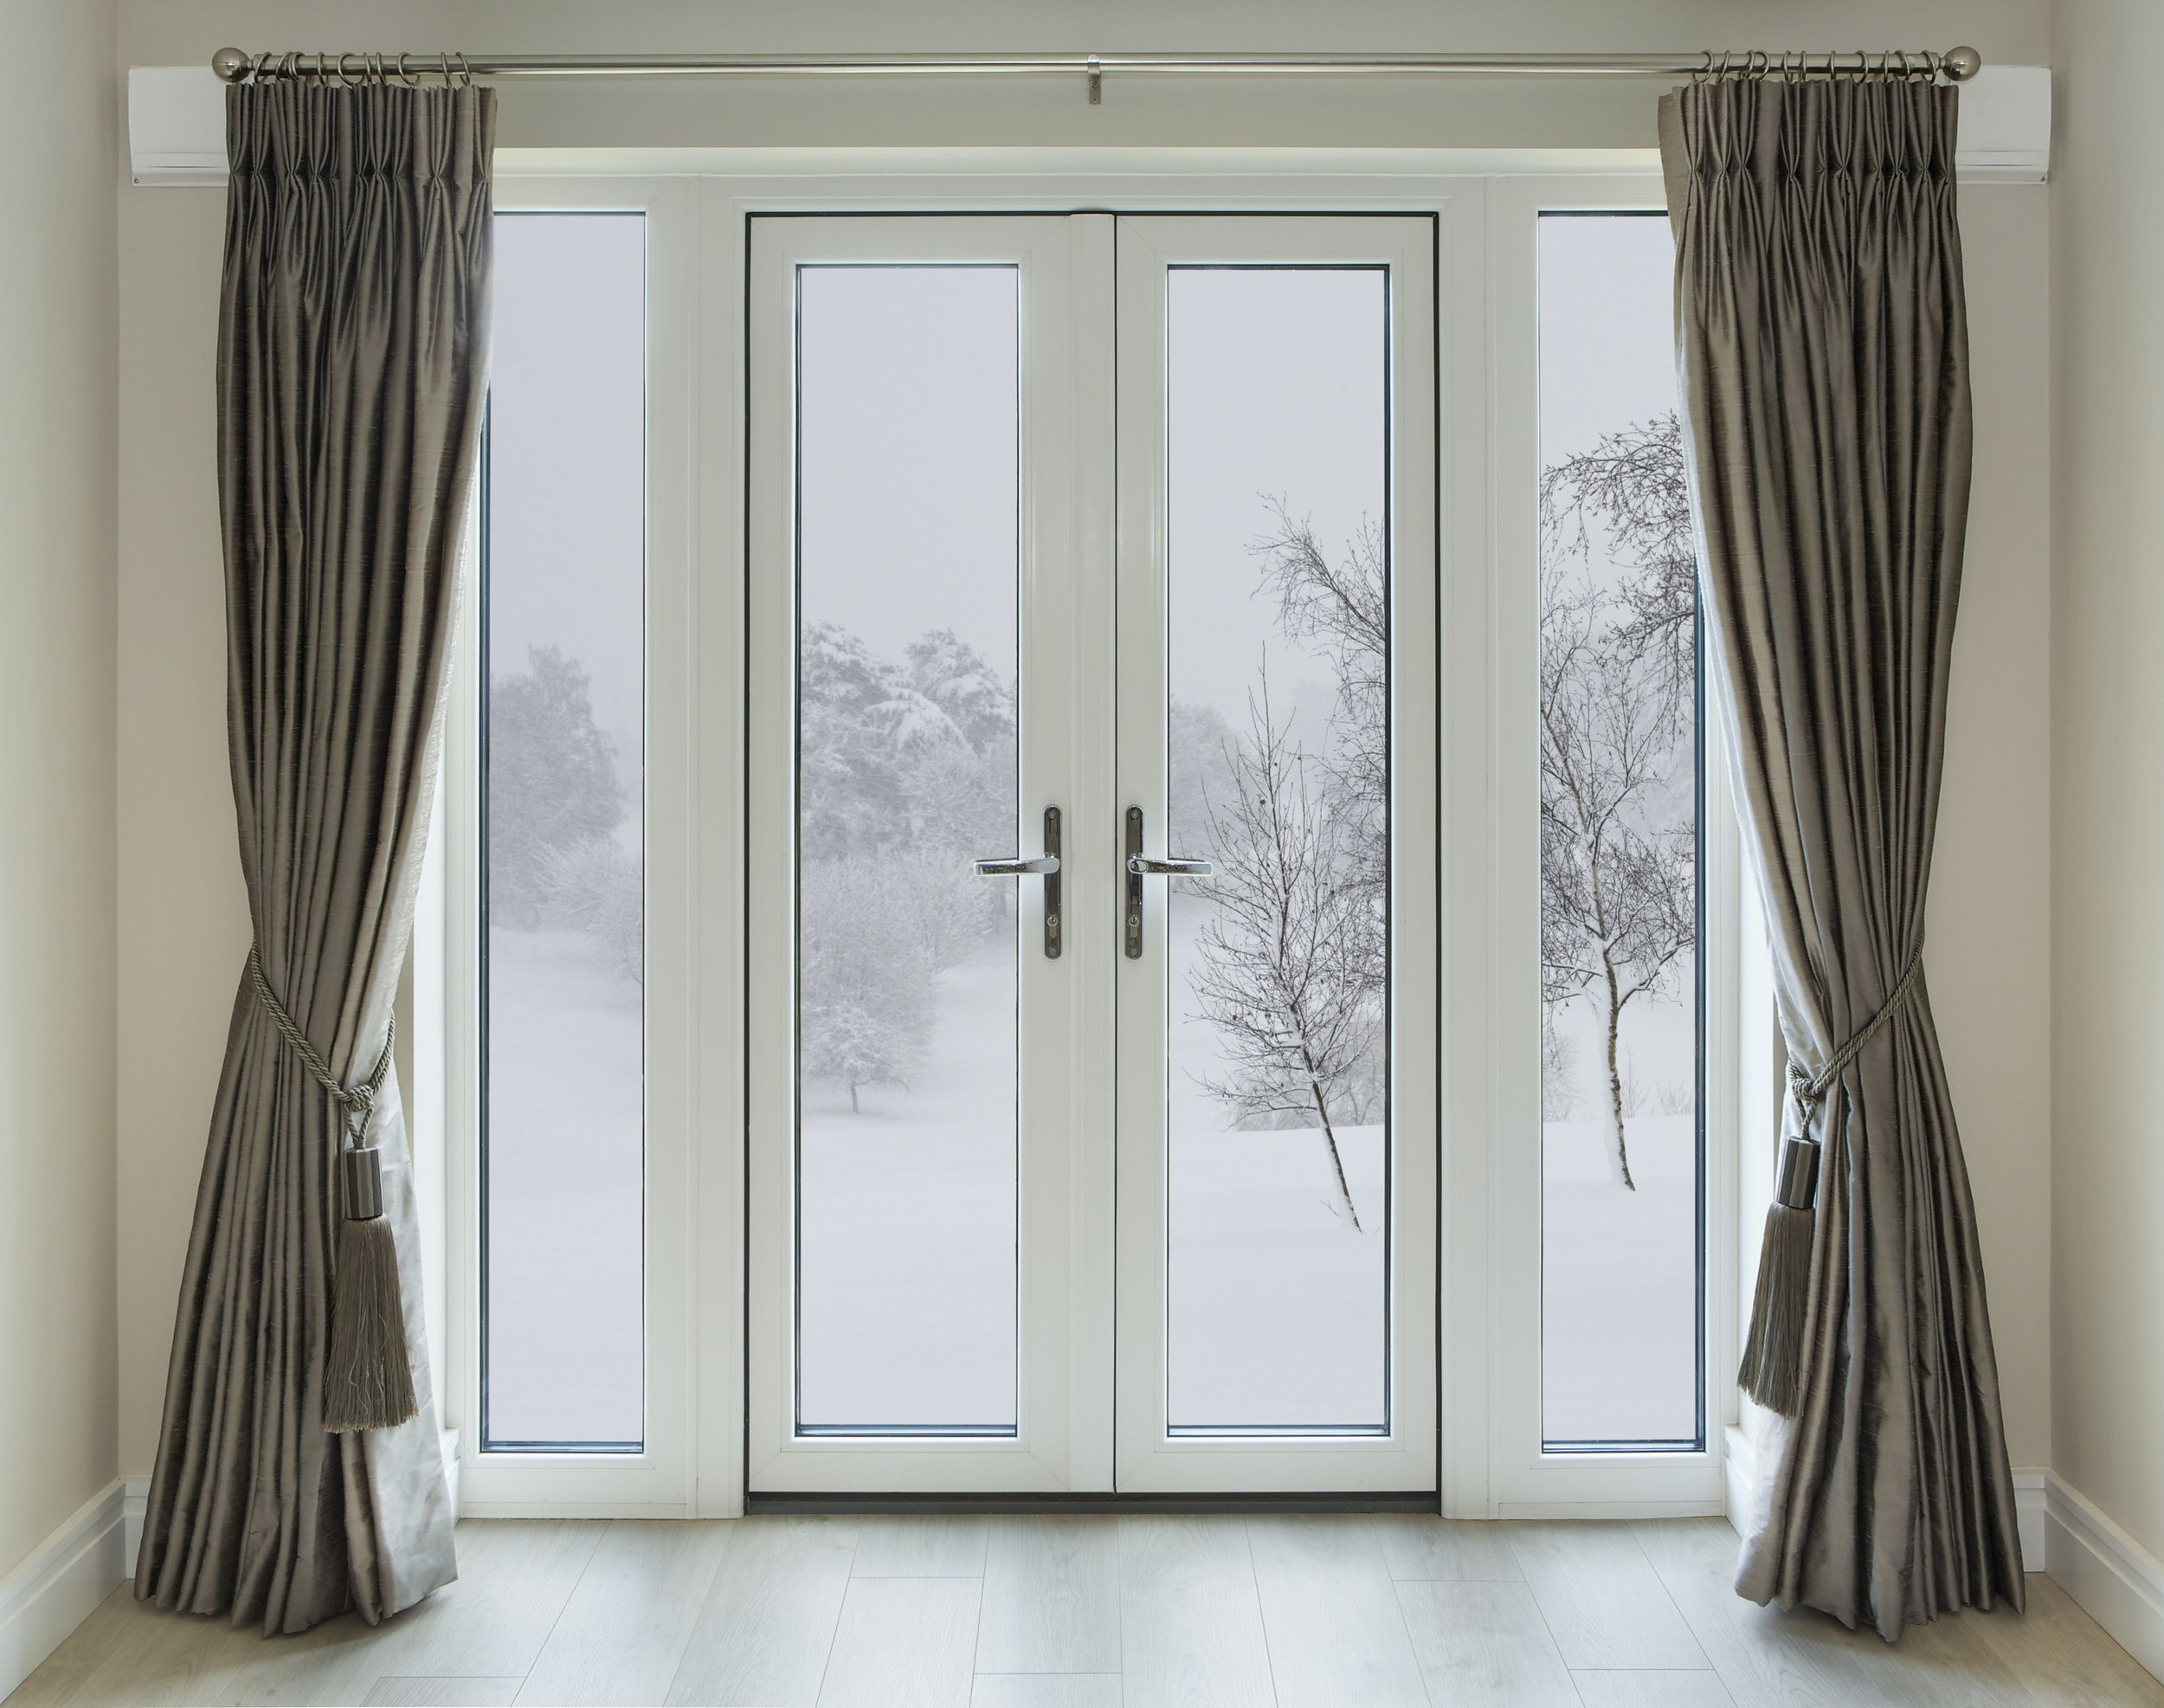 Type Of Curtain Can Keep Your Home Warmer In The Winter Hanging